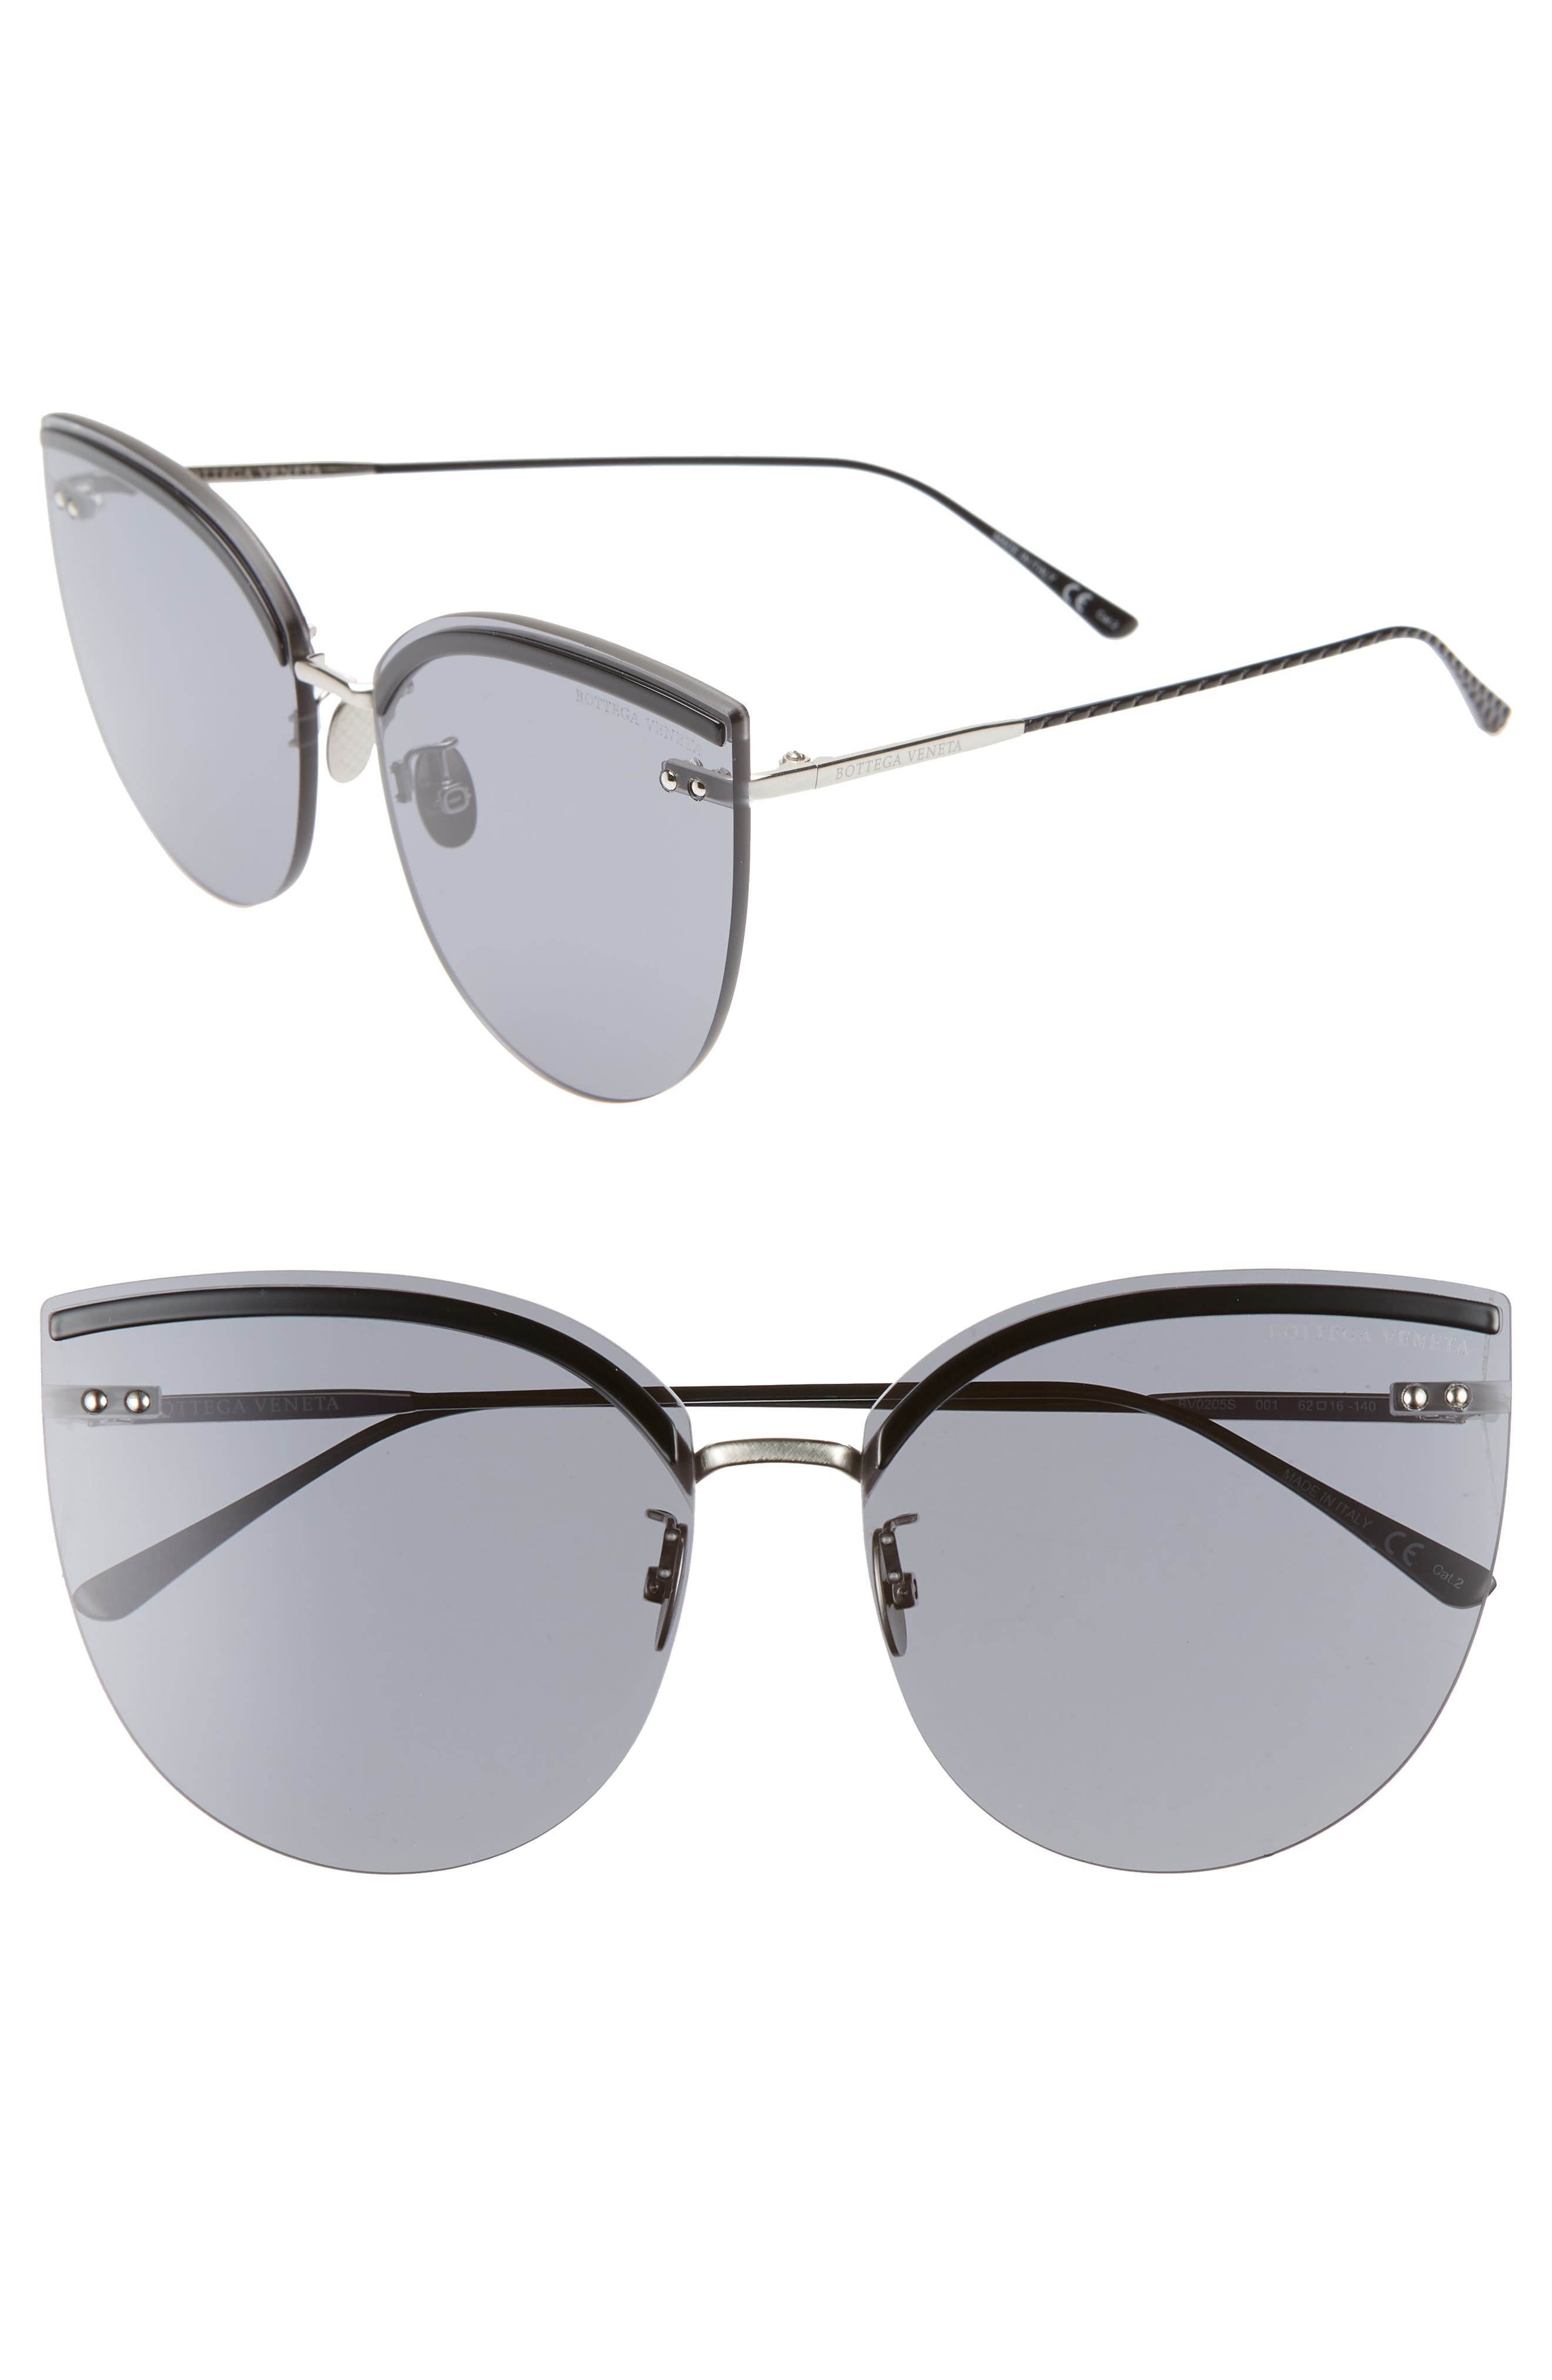 62mm Oversize Rimless Cat Eye Sunglasses,                             Main thumbnail 1, color,                             SILVER/ BLACK